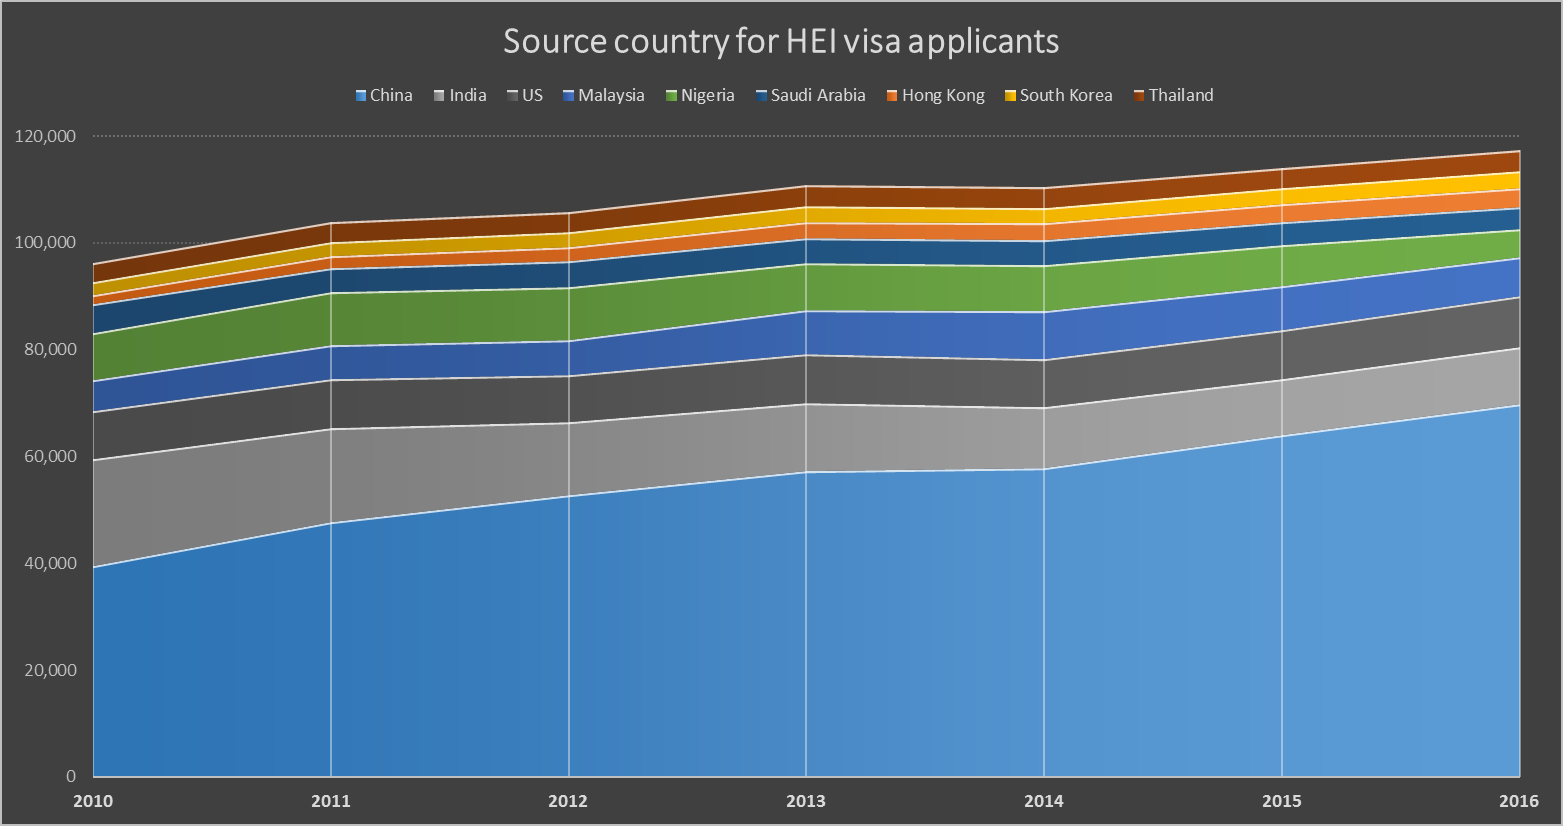 Visa applicants to university by country